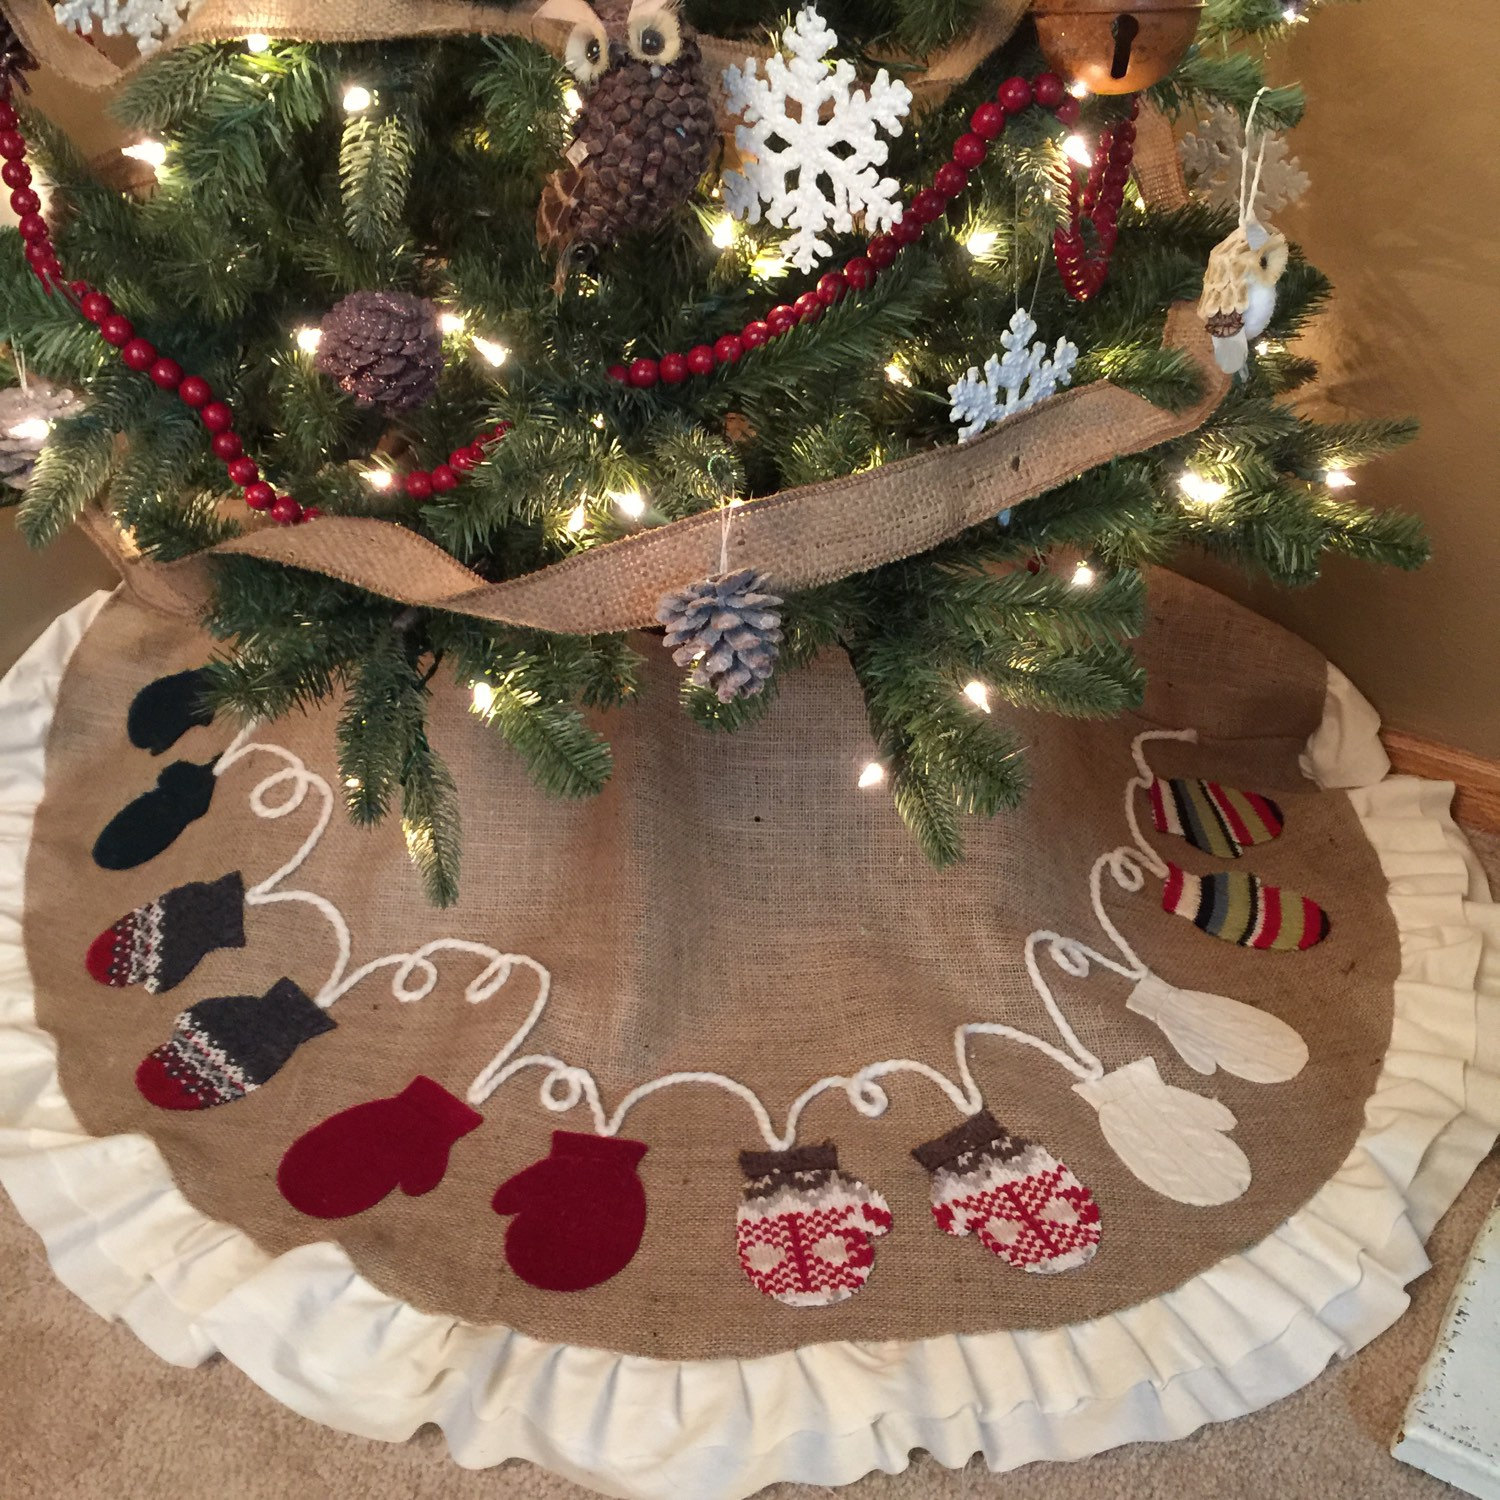 Personalized Christmas Tree Skirts